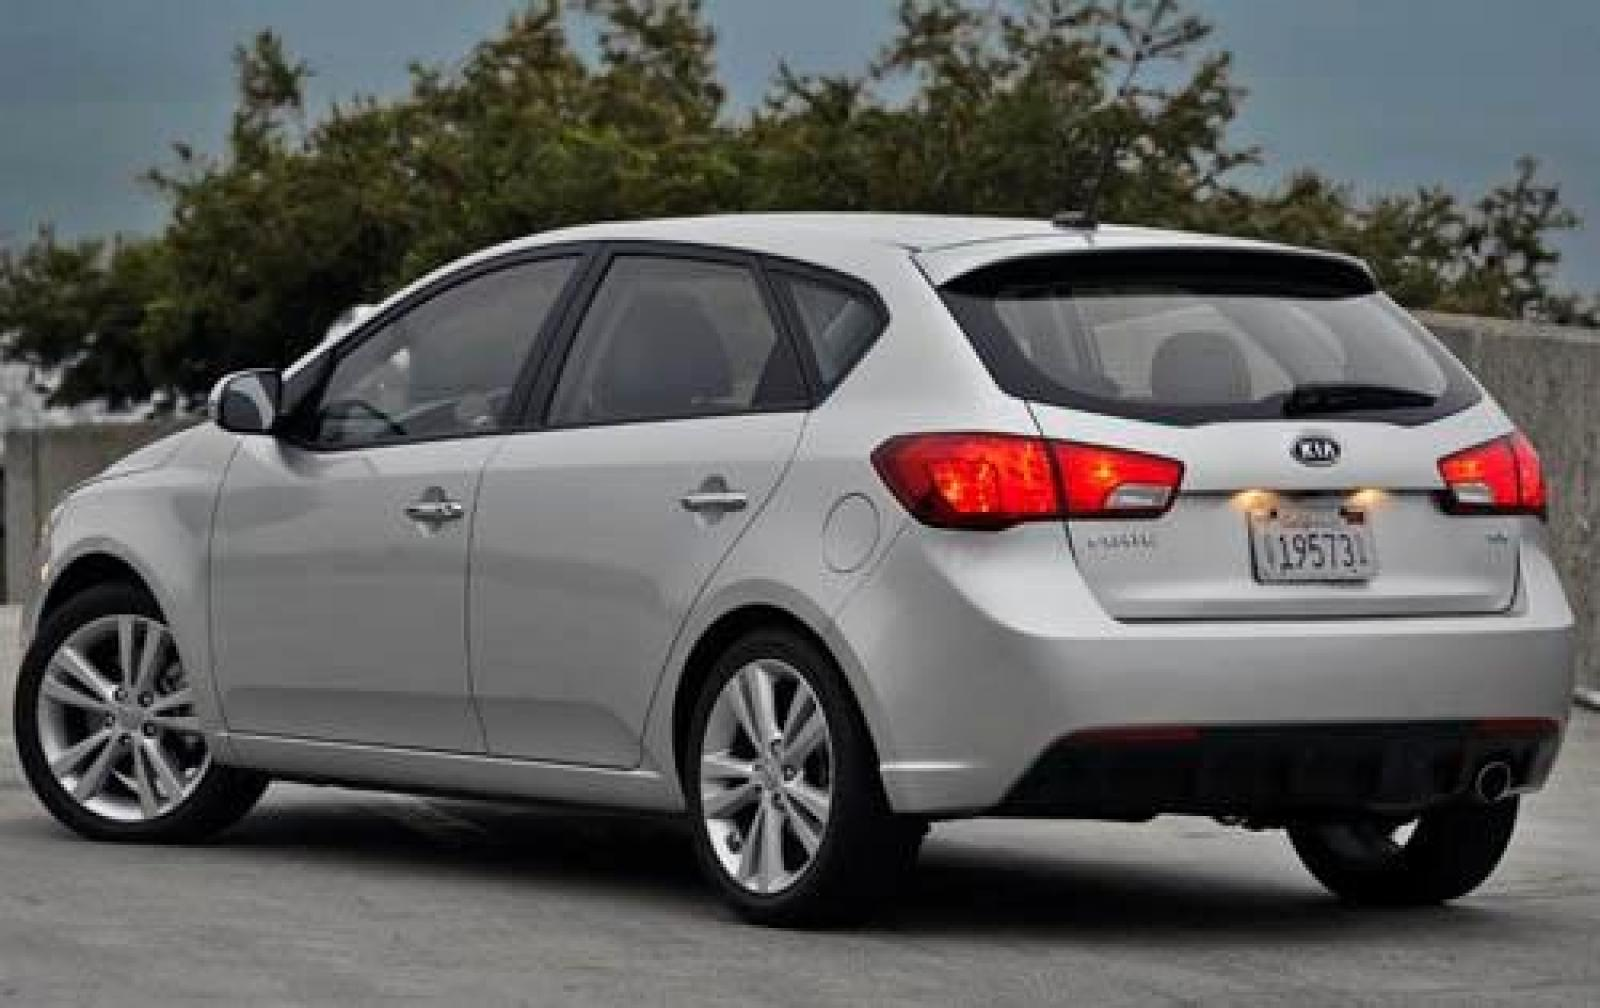 2012 kia forte information and photos zombiedrive. Black Bedroom Furniture Sets. Home Design Ideas